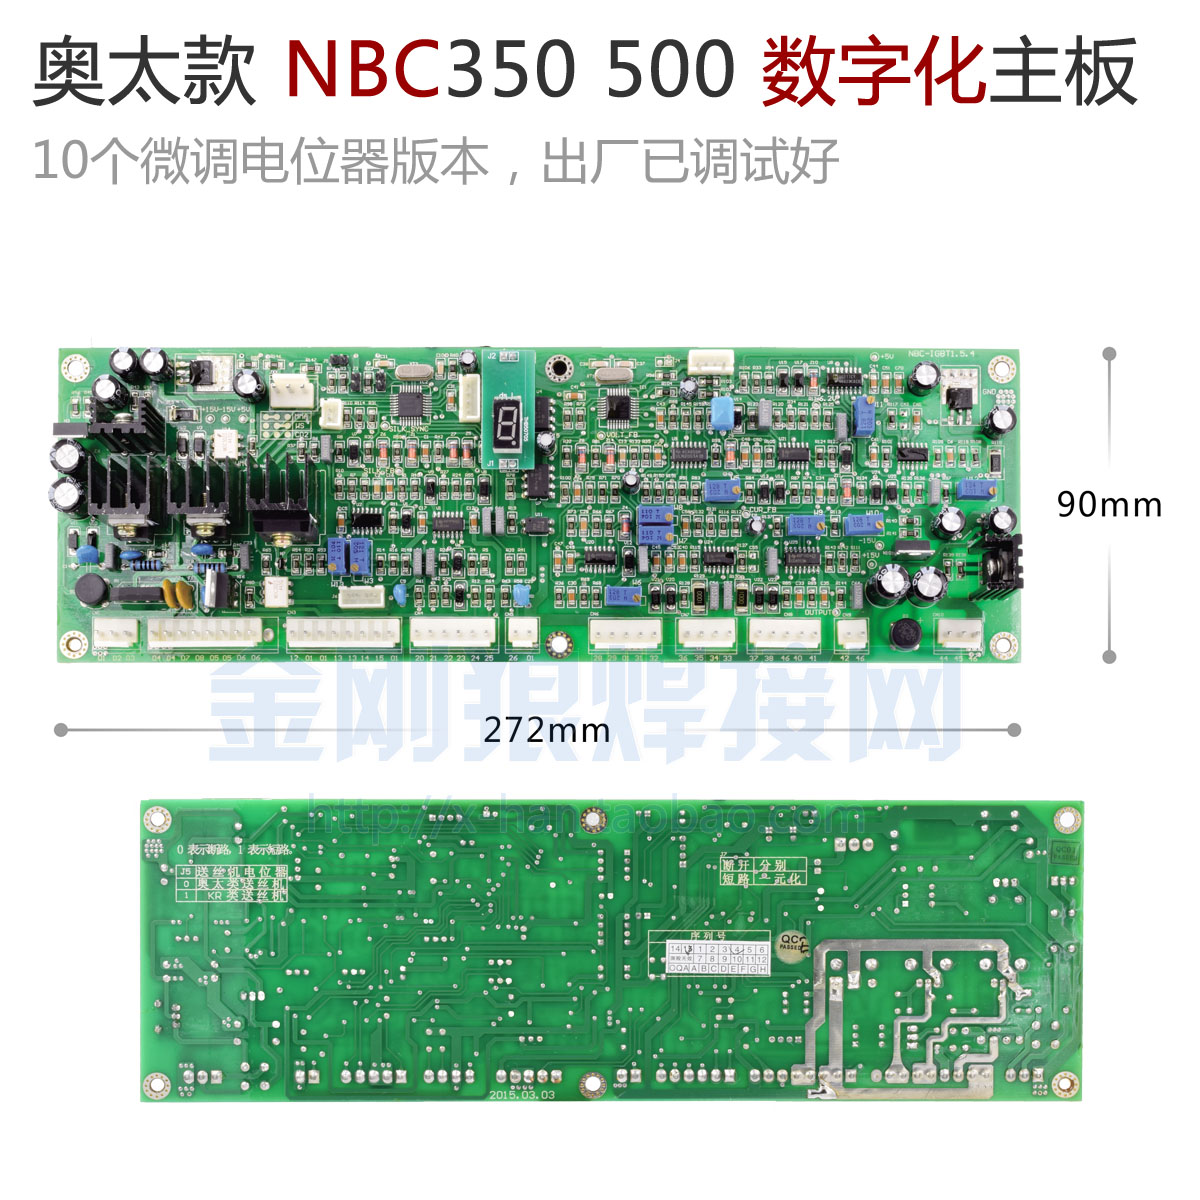 The Sun NBC350 500 Inverter IGBT Gas Welding Circuit Board of Digital Circuit Board with Welding inverter electric welder circuit board general money welding machine 200 drive board